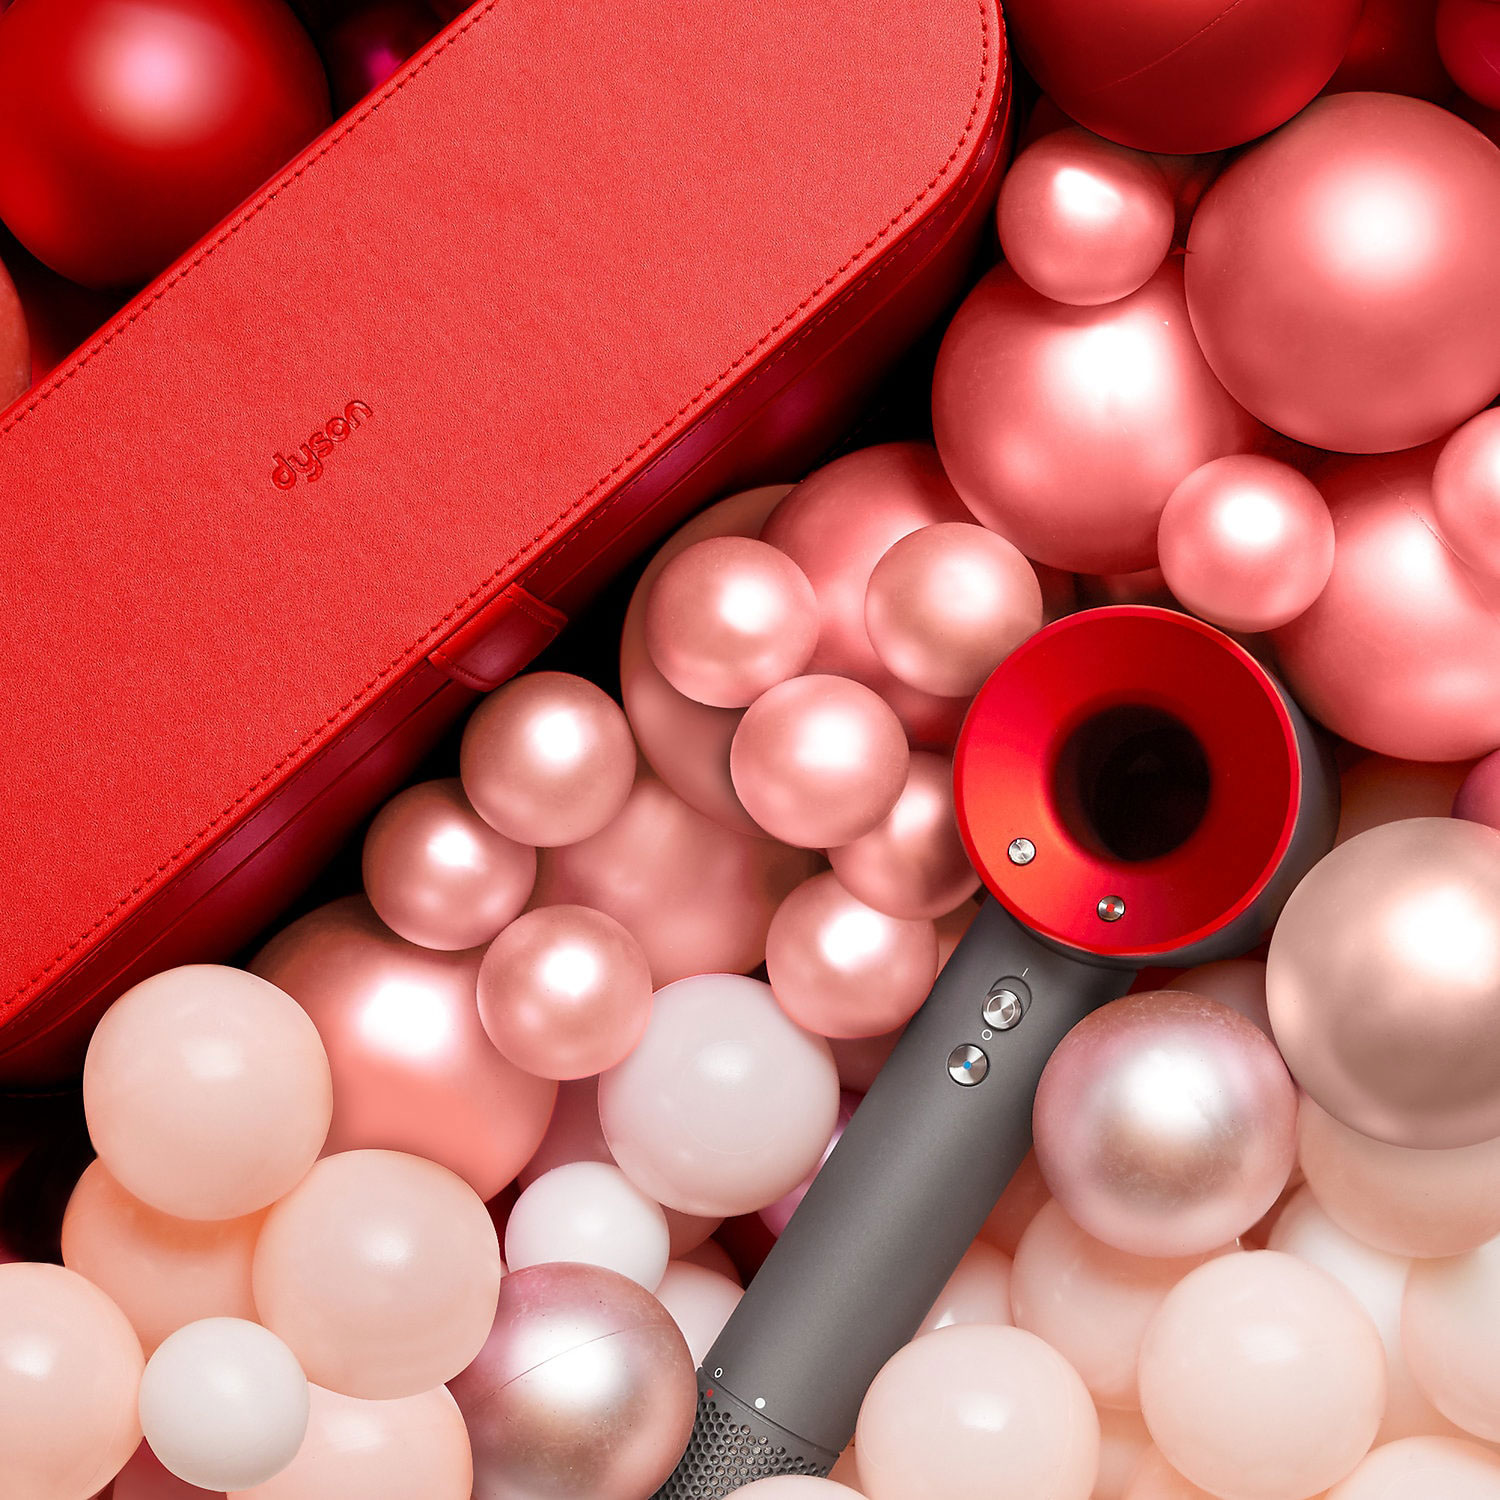 11 Gifts for the Beauty-Lover on Your List